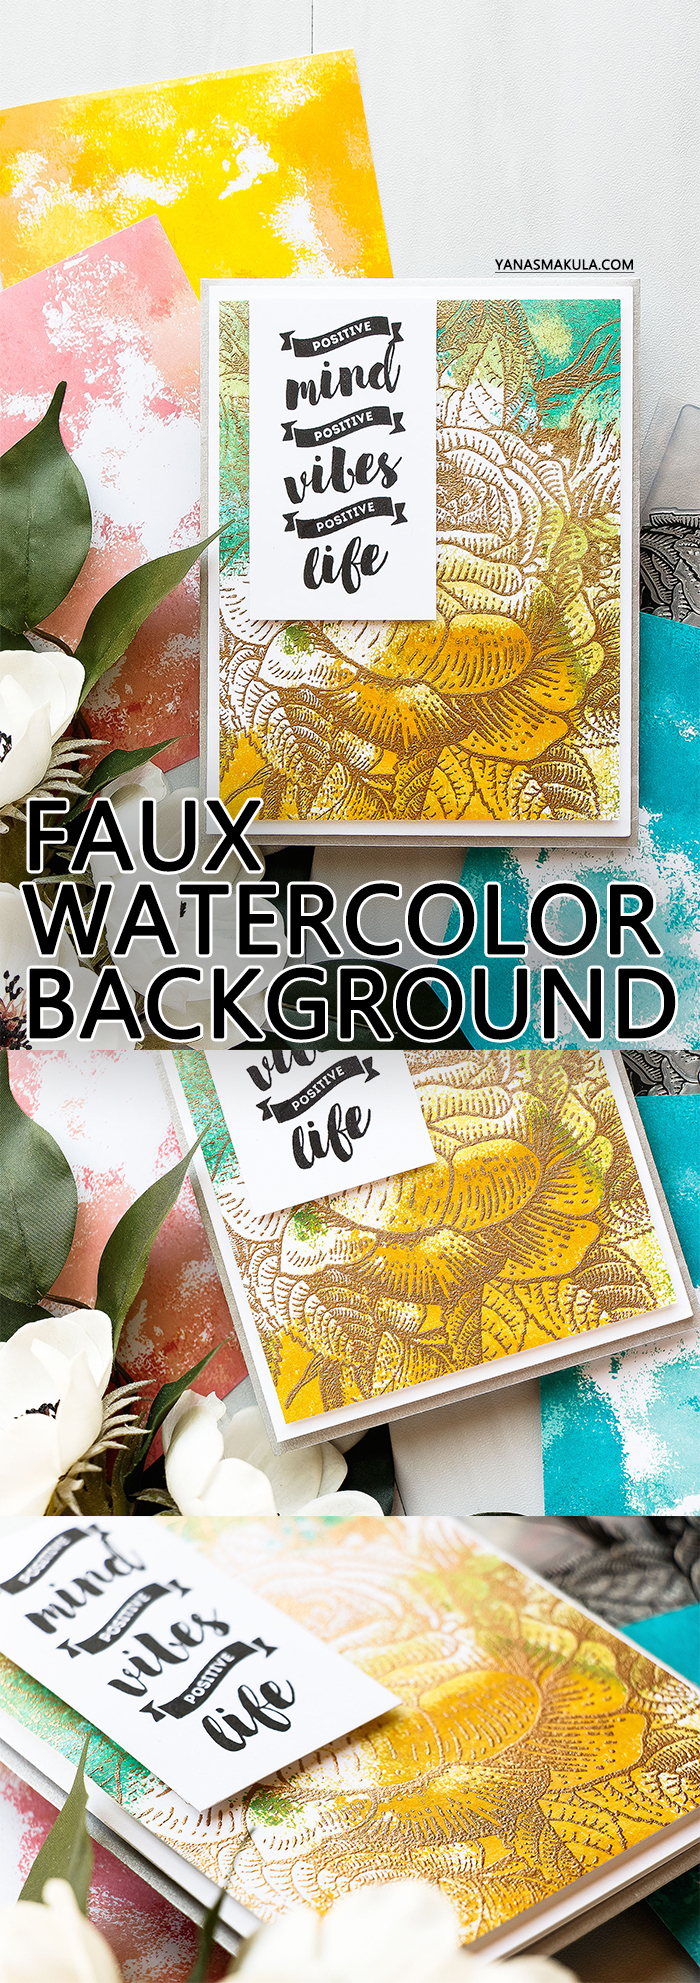 Brutus Monroe | Stamped Faux Watercolor Backgrounds by Yana Smakula